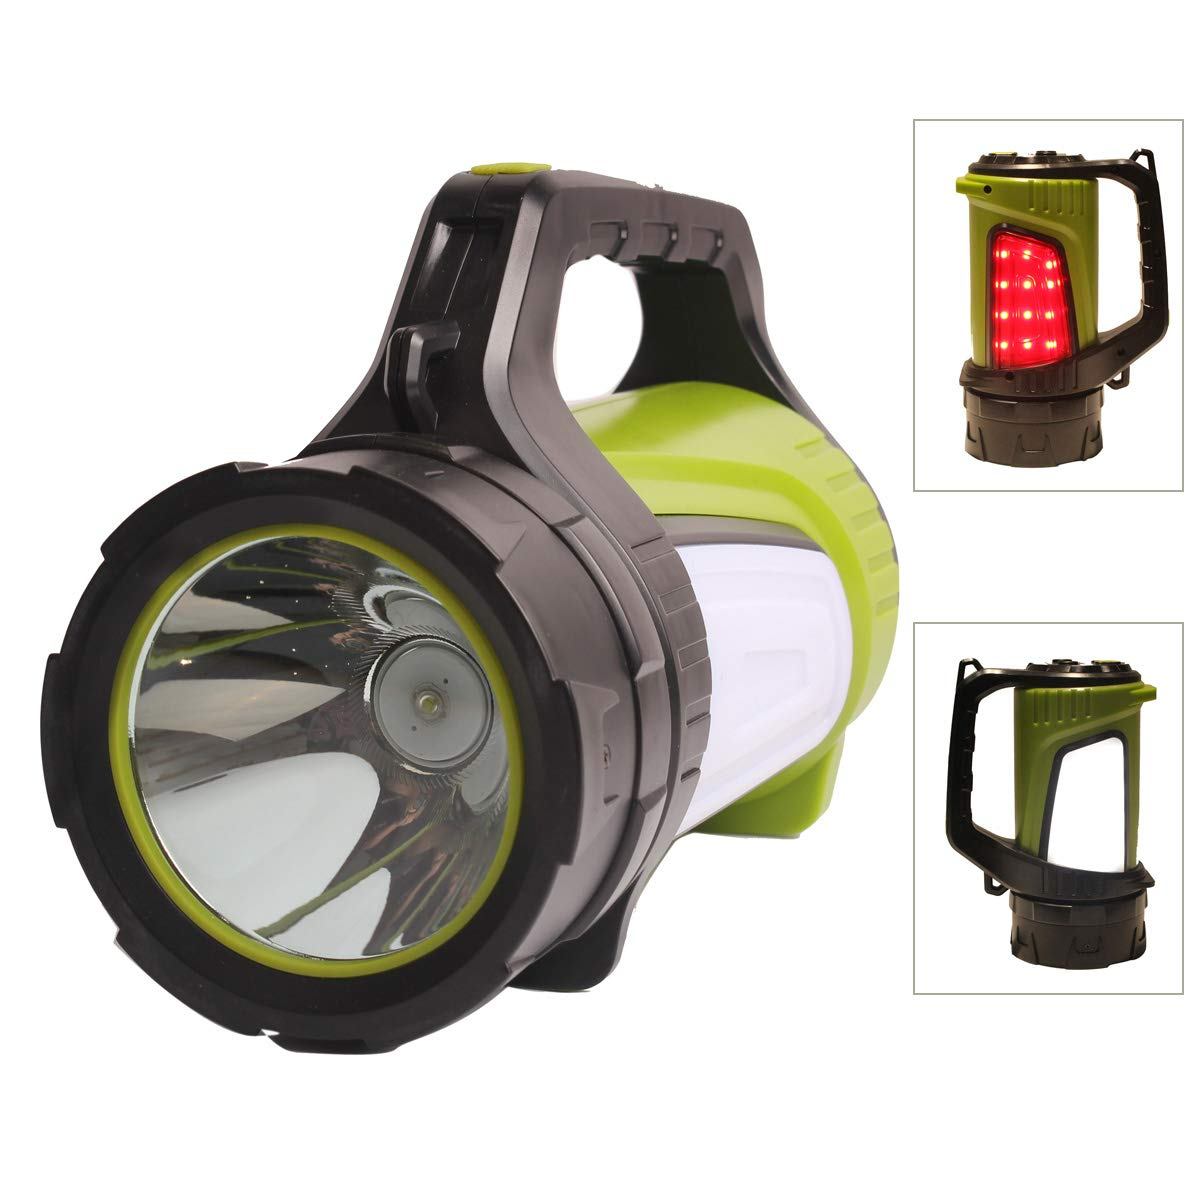 JL Home 1200lm Super Bright LED Camping Lantern Flashlight, Rechargeable, 4500mAh Power Bank, Multifunction Spotlight for Summer Camp, Outdoor Searching, Night Working, Emergency Power Outages